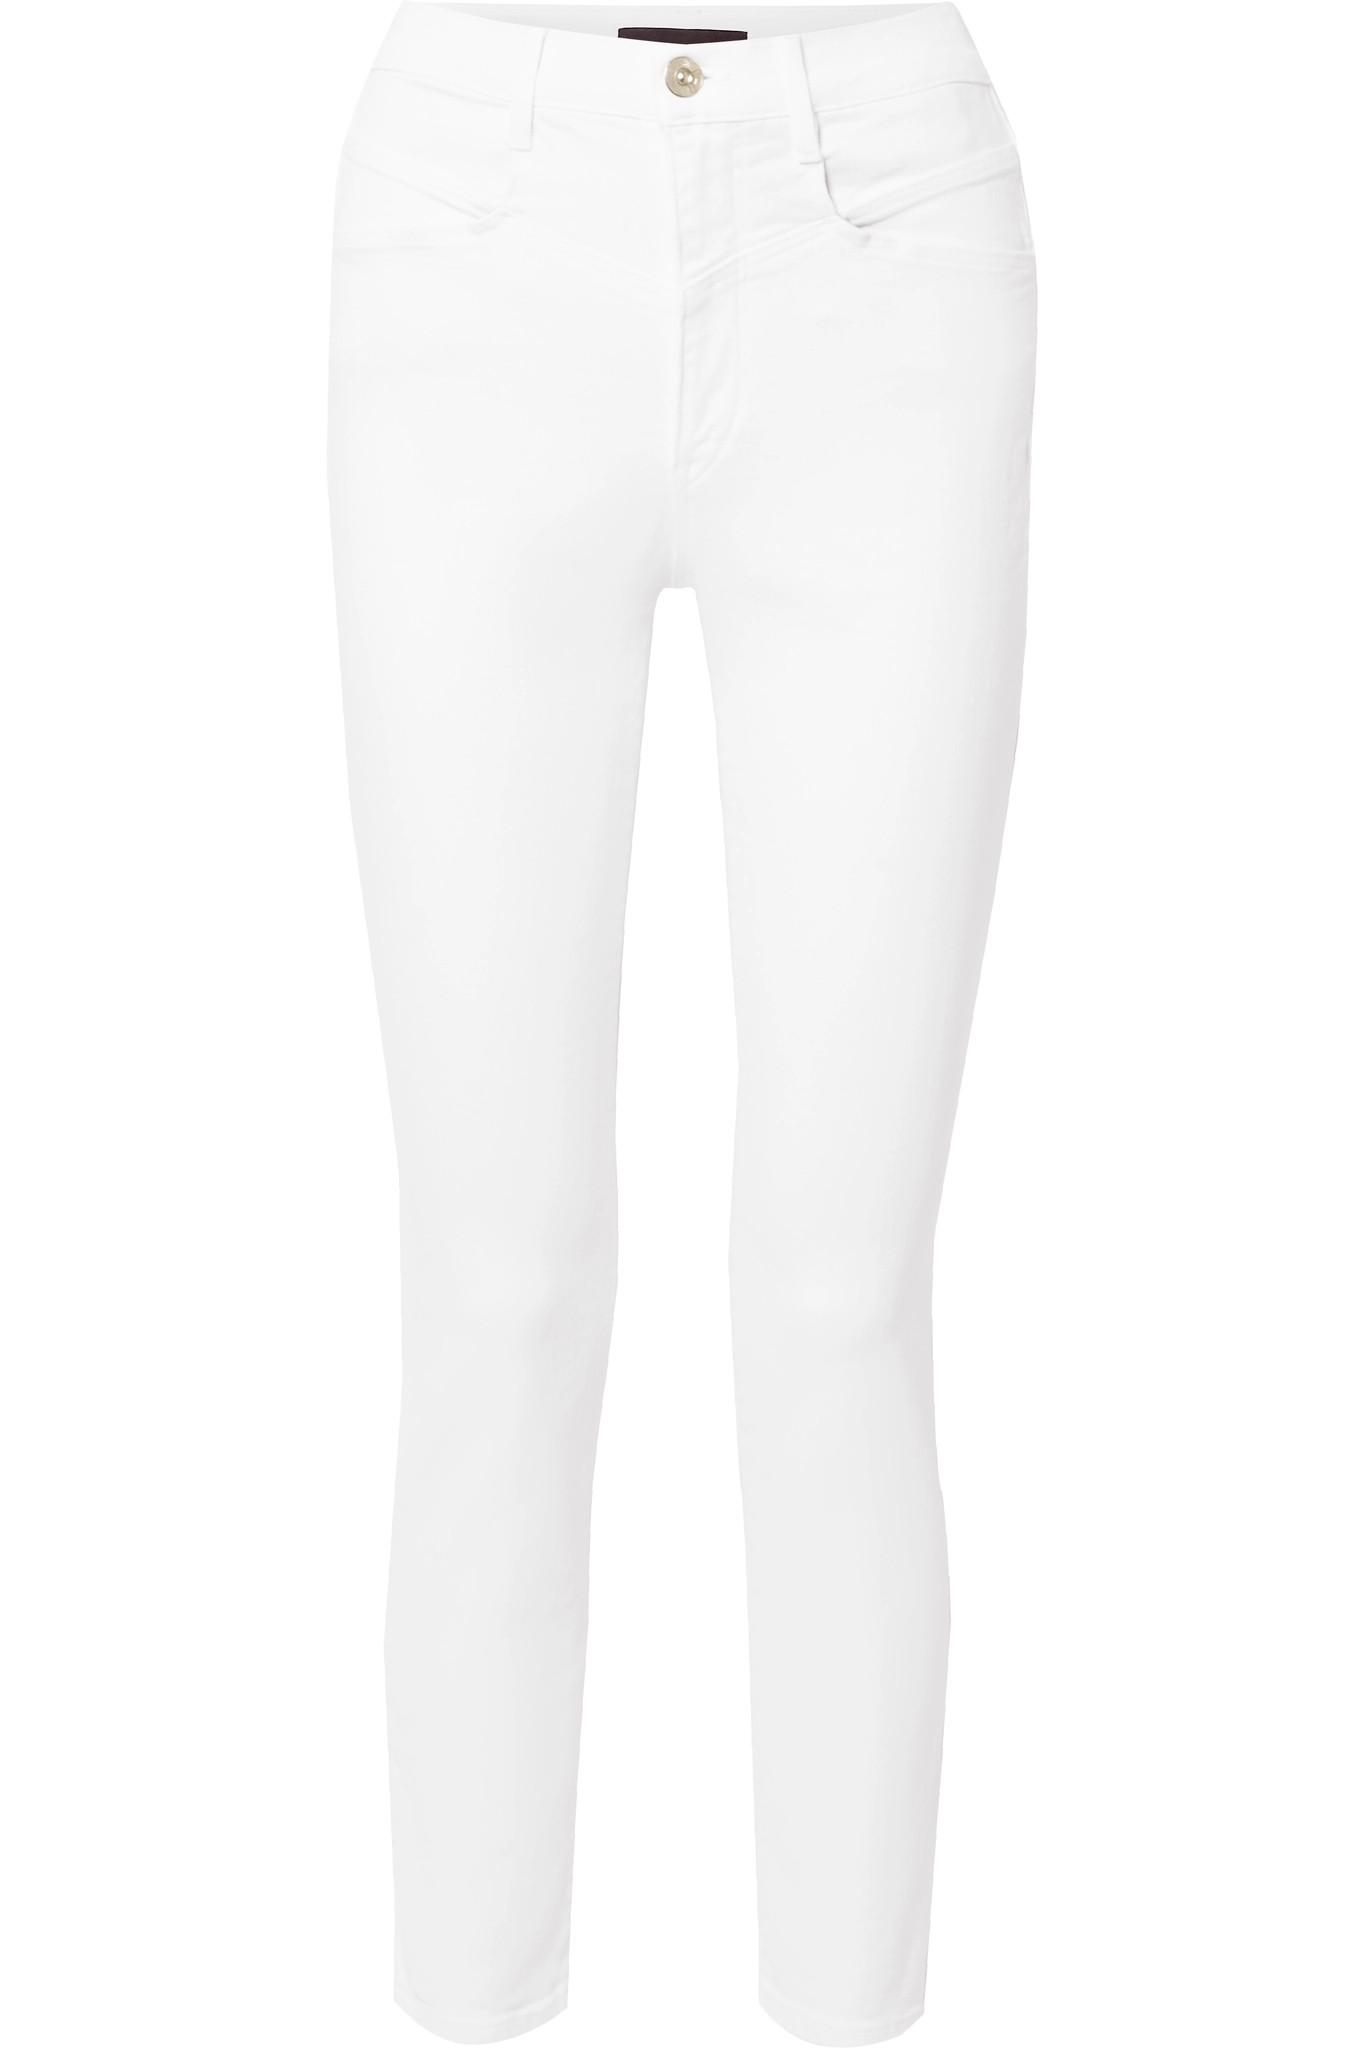 4c4fd6fee660 Lyst - 3x1 Jesse High-rise Skinny Jeans in White